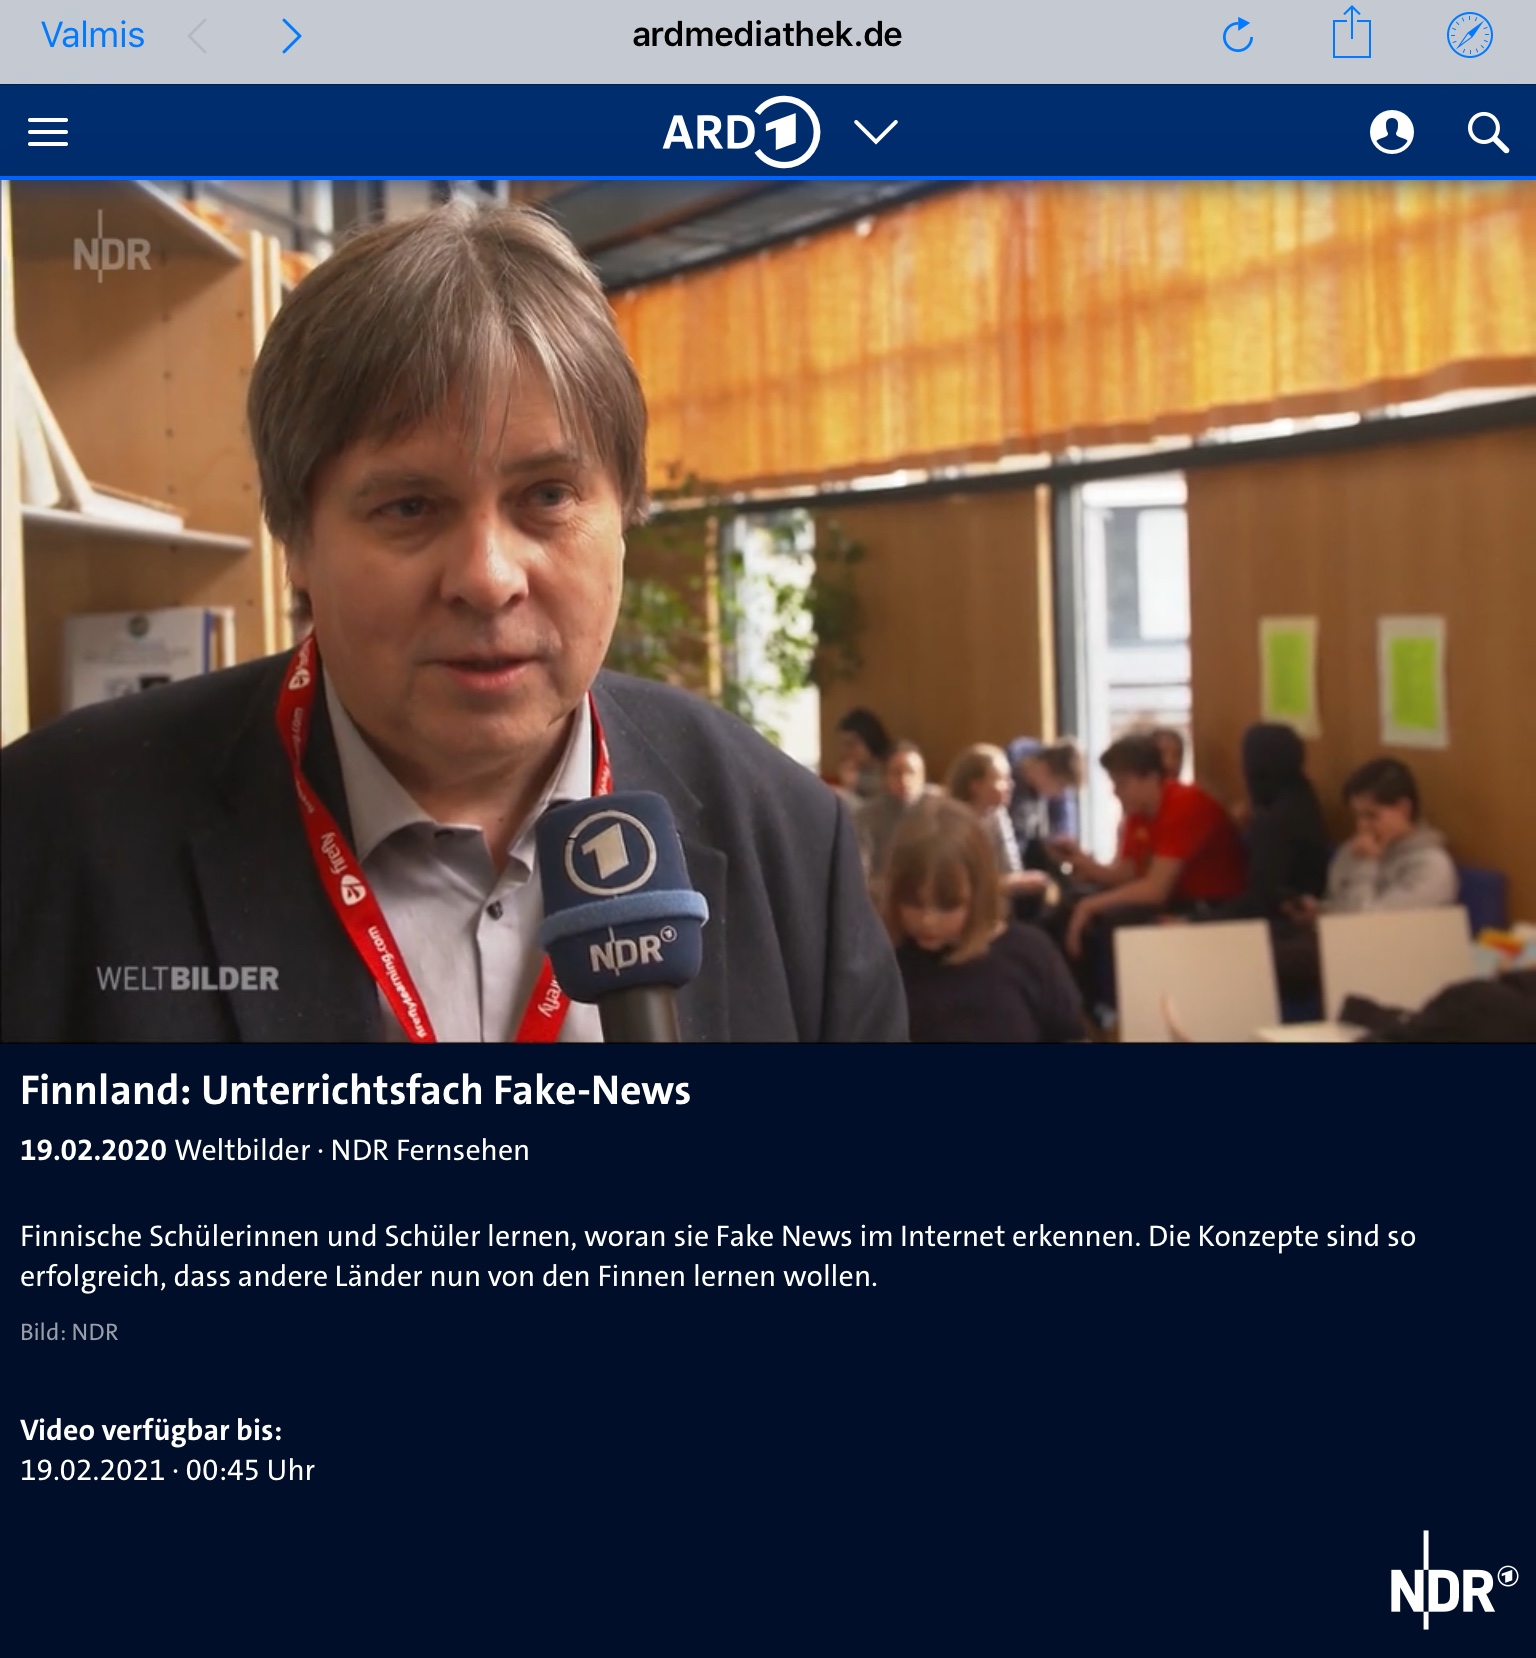 NDR/ARD1 reported about the Finnish media- and information literacy education